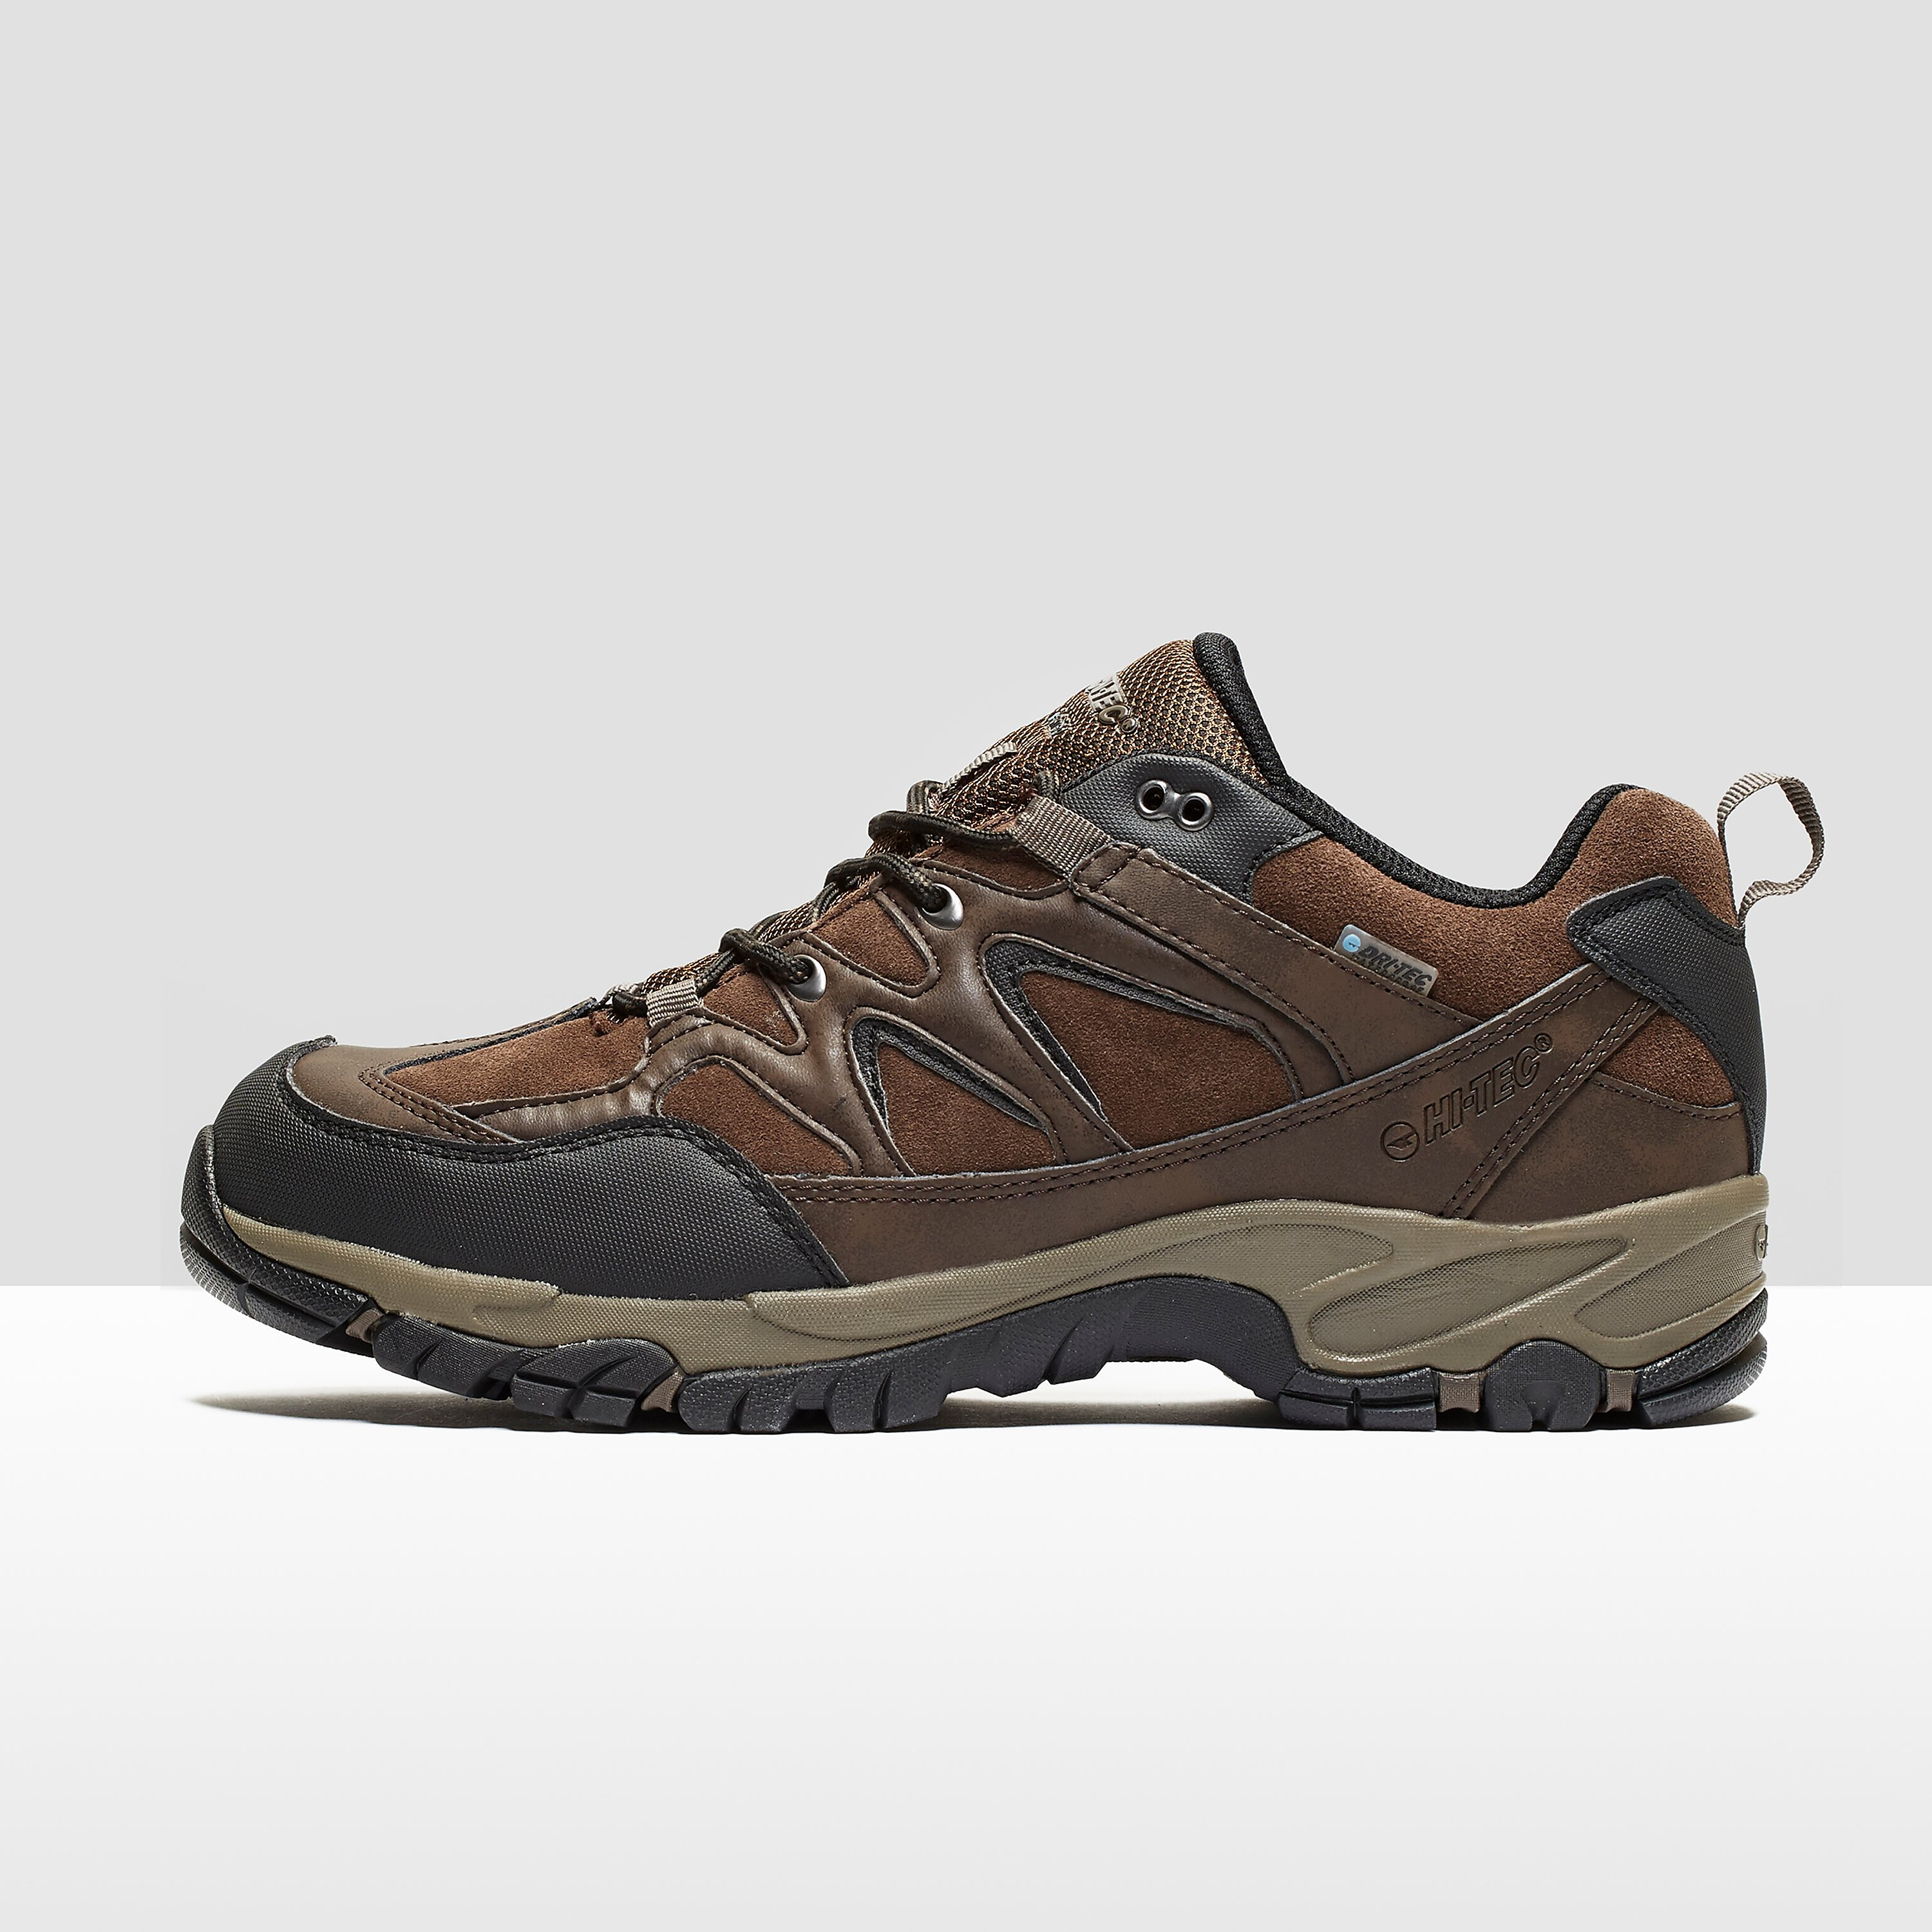 Hi Tec Altitude Trek Low i WP Men's Hiking Shoe